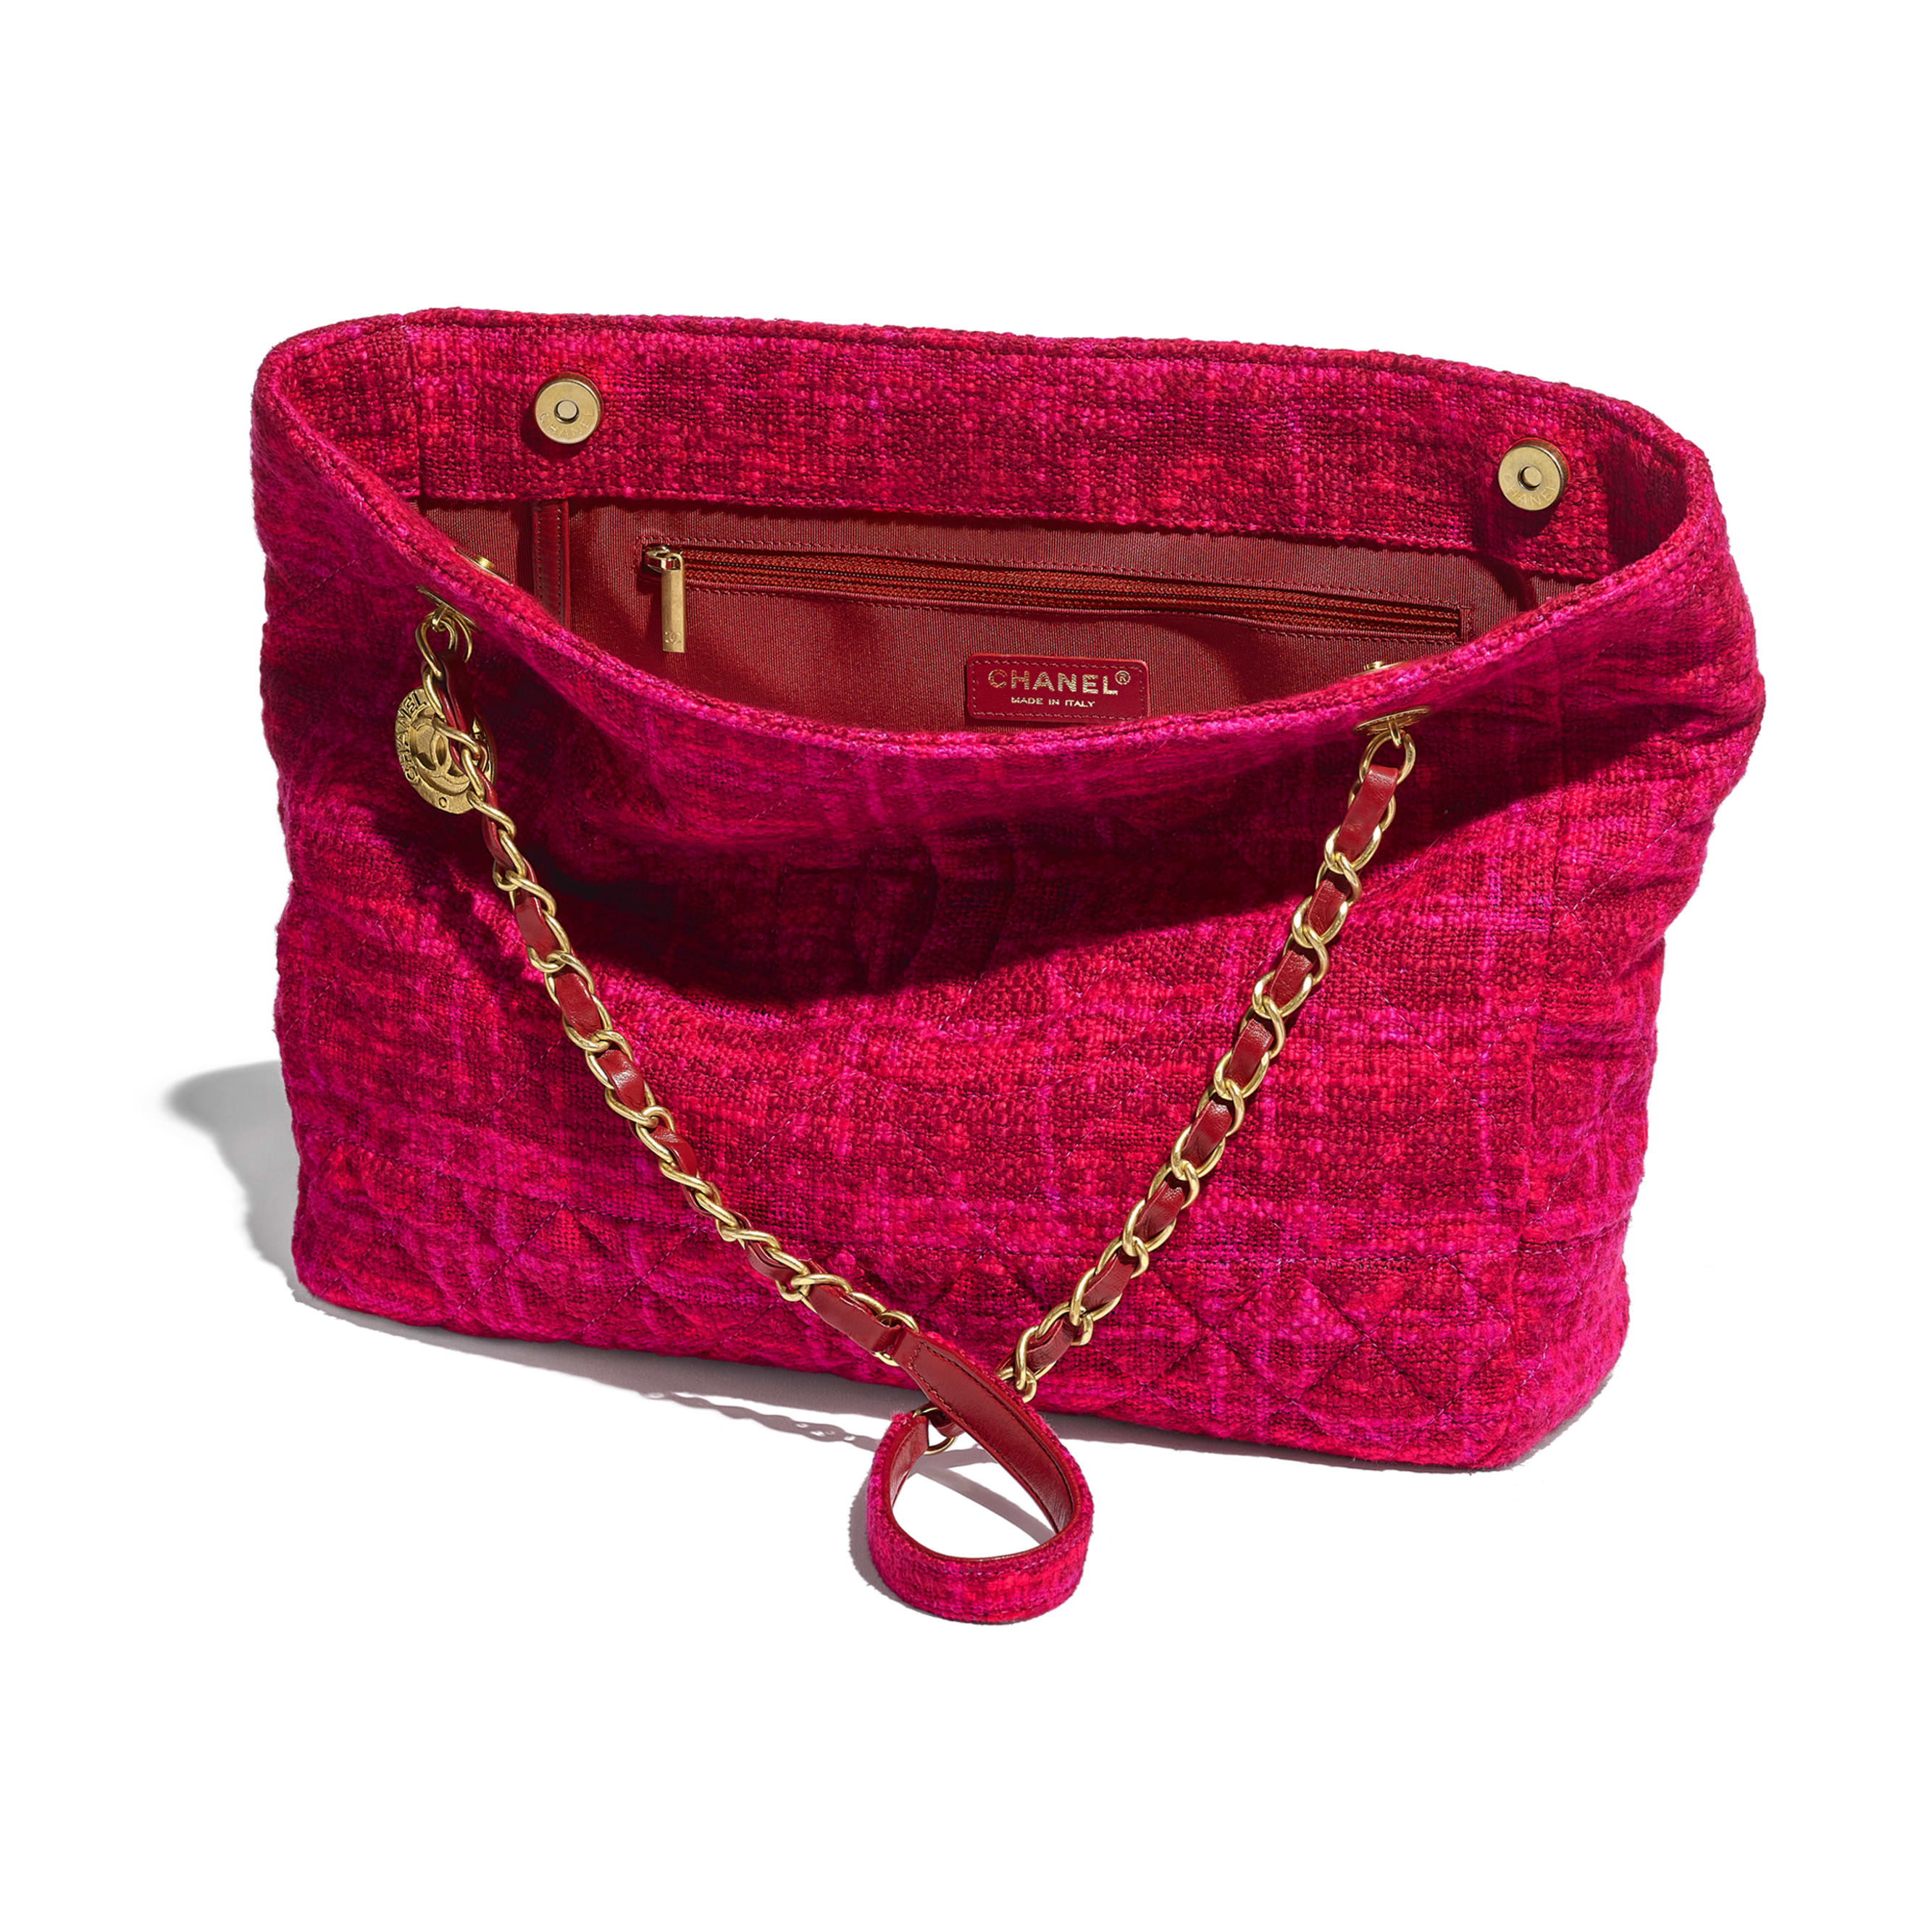 Large Shopping Bag - Fuchsia & Red - Cotton Tweed & Gold-Tone Metal - CHANEL - Other view - see standard sized version